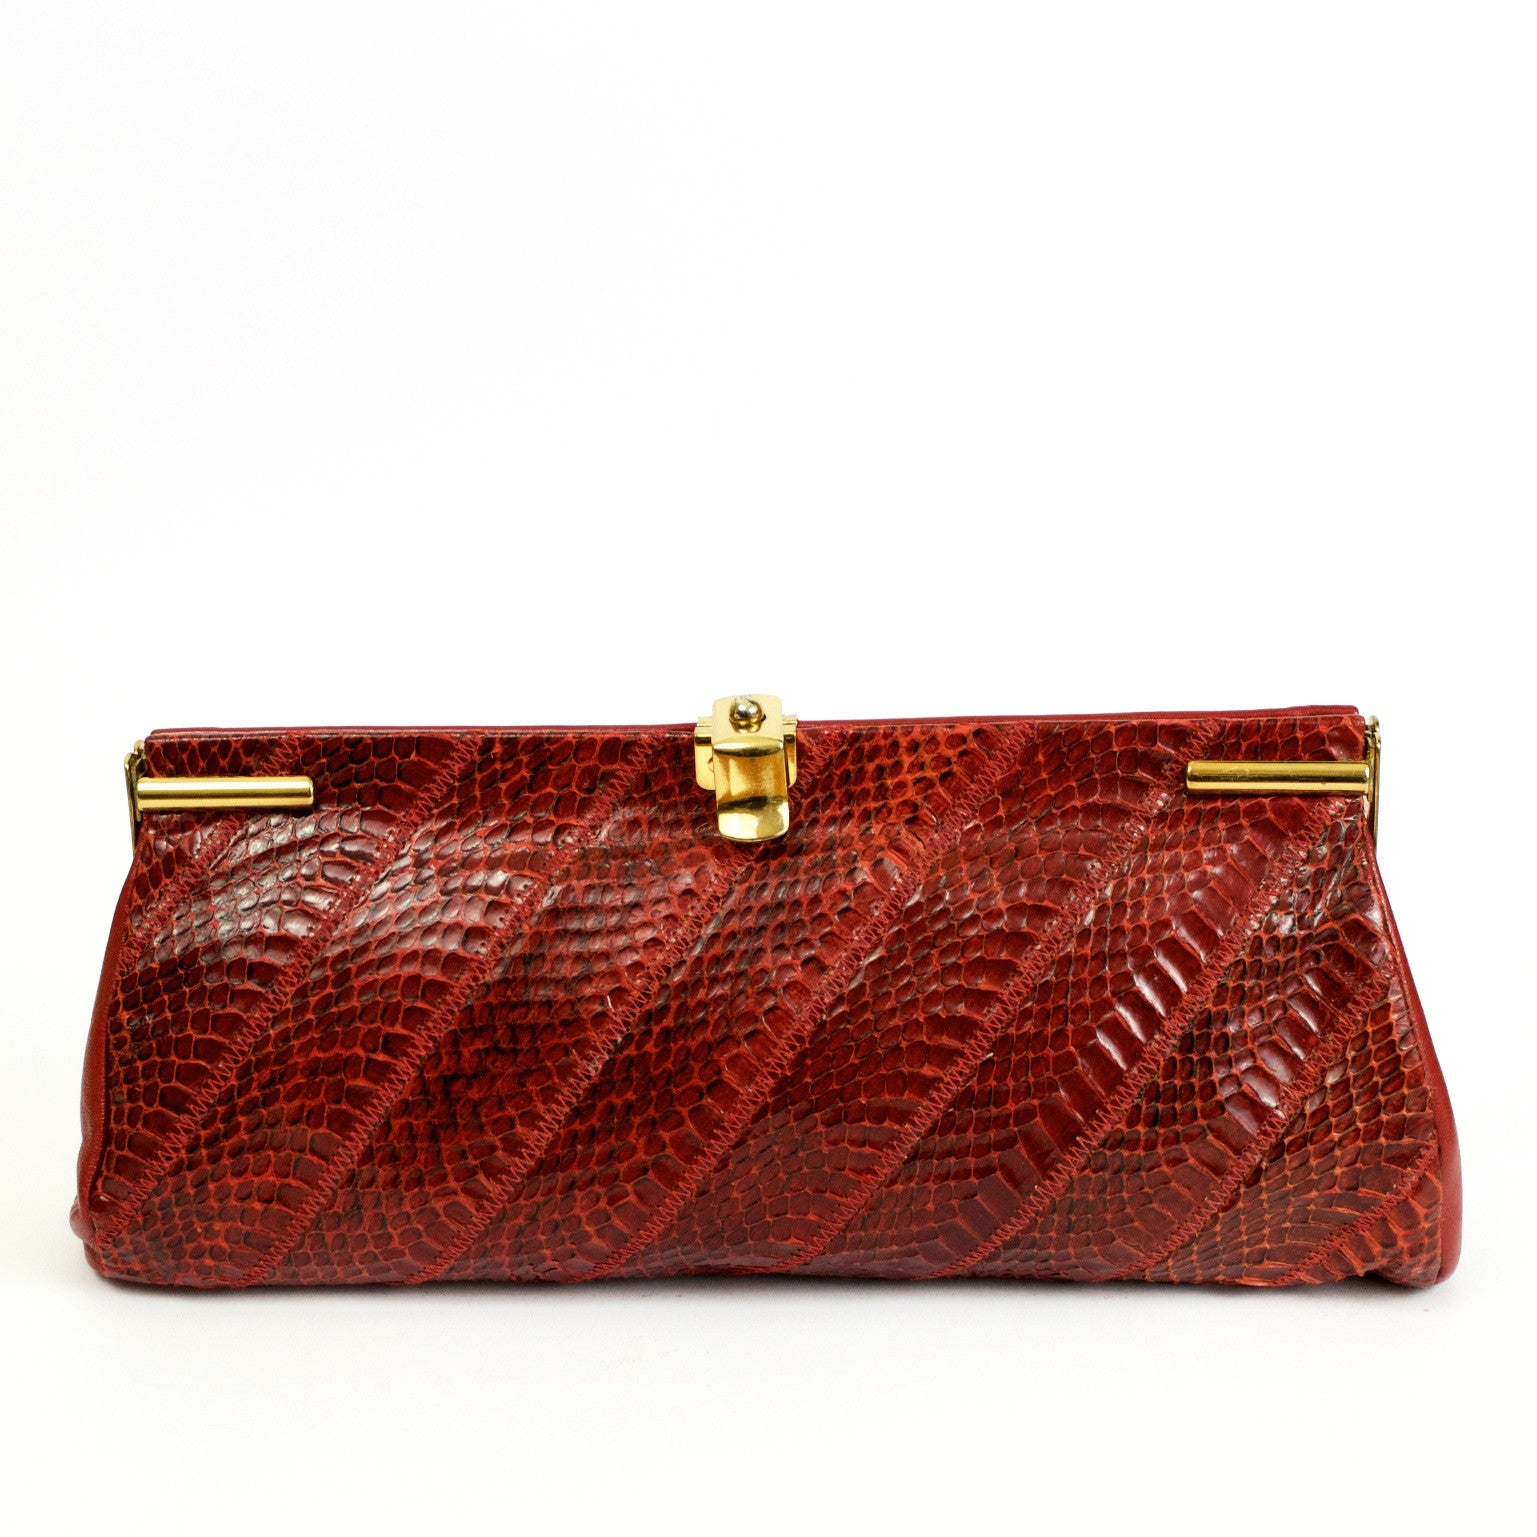 Vintage red snakeskin and leather clutch bag by Jane Shilton